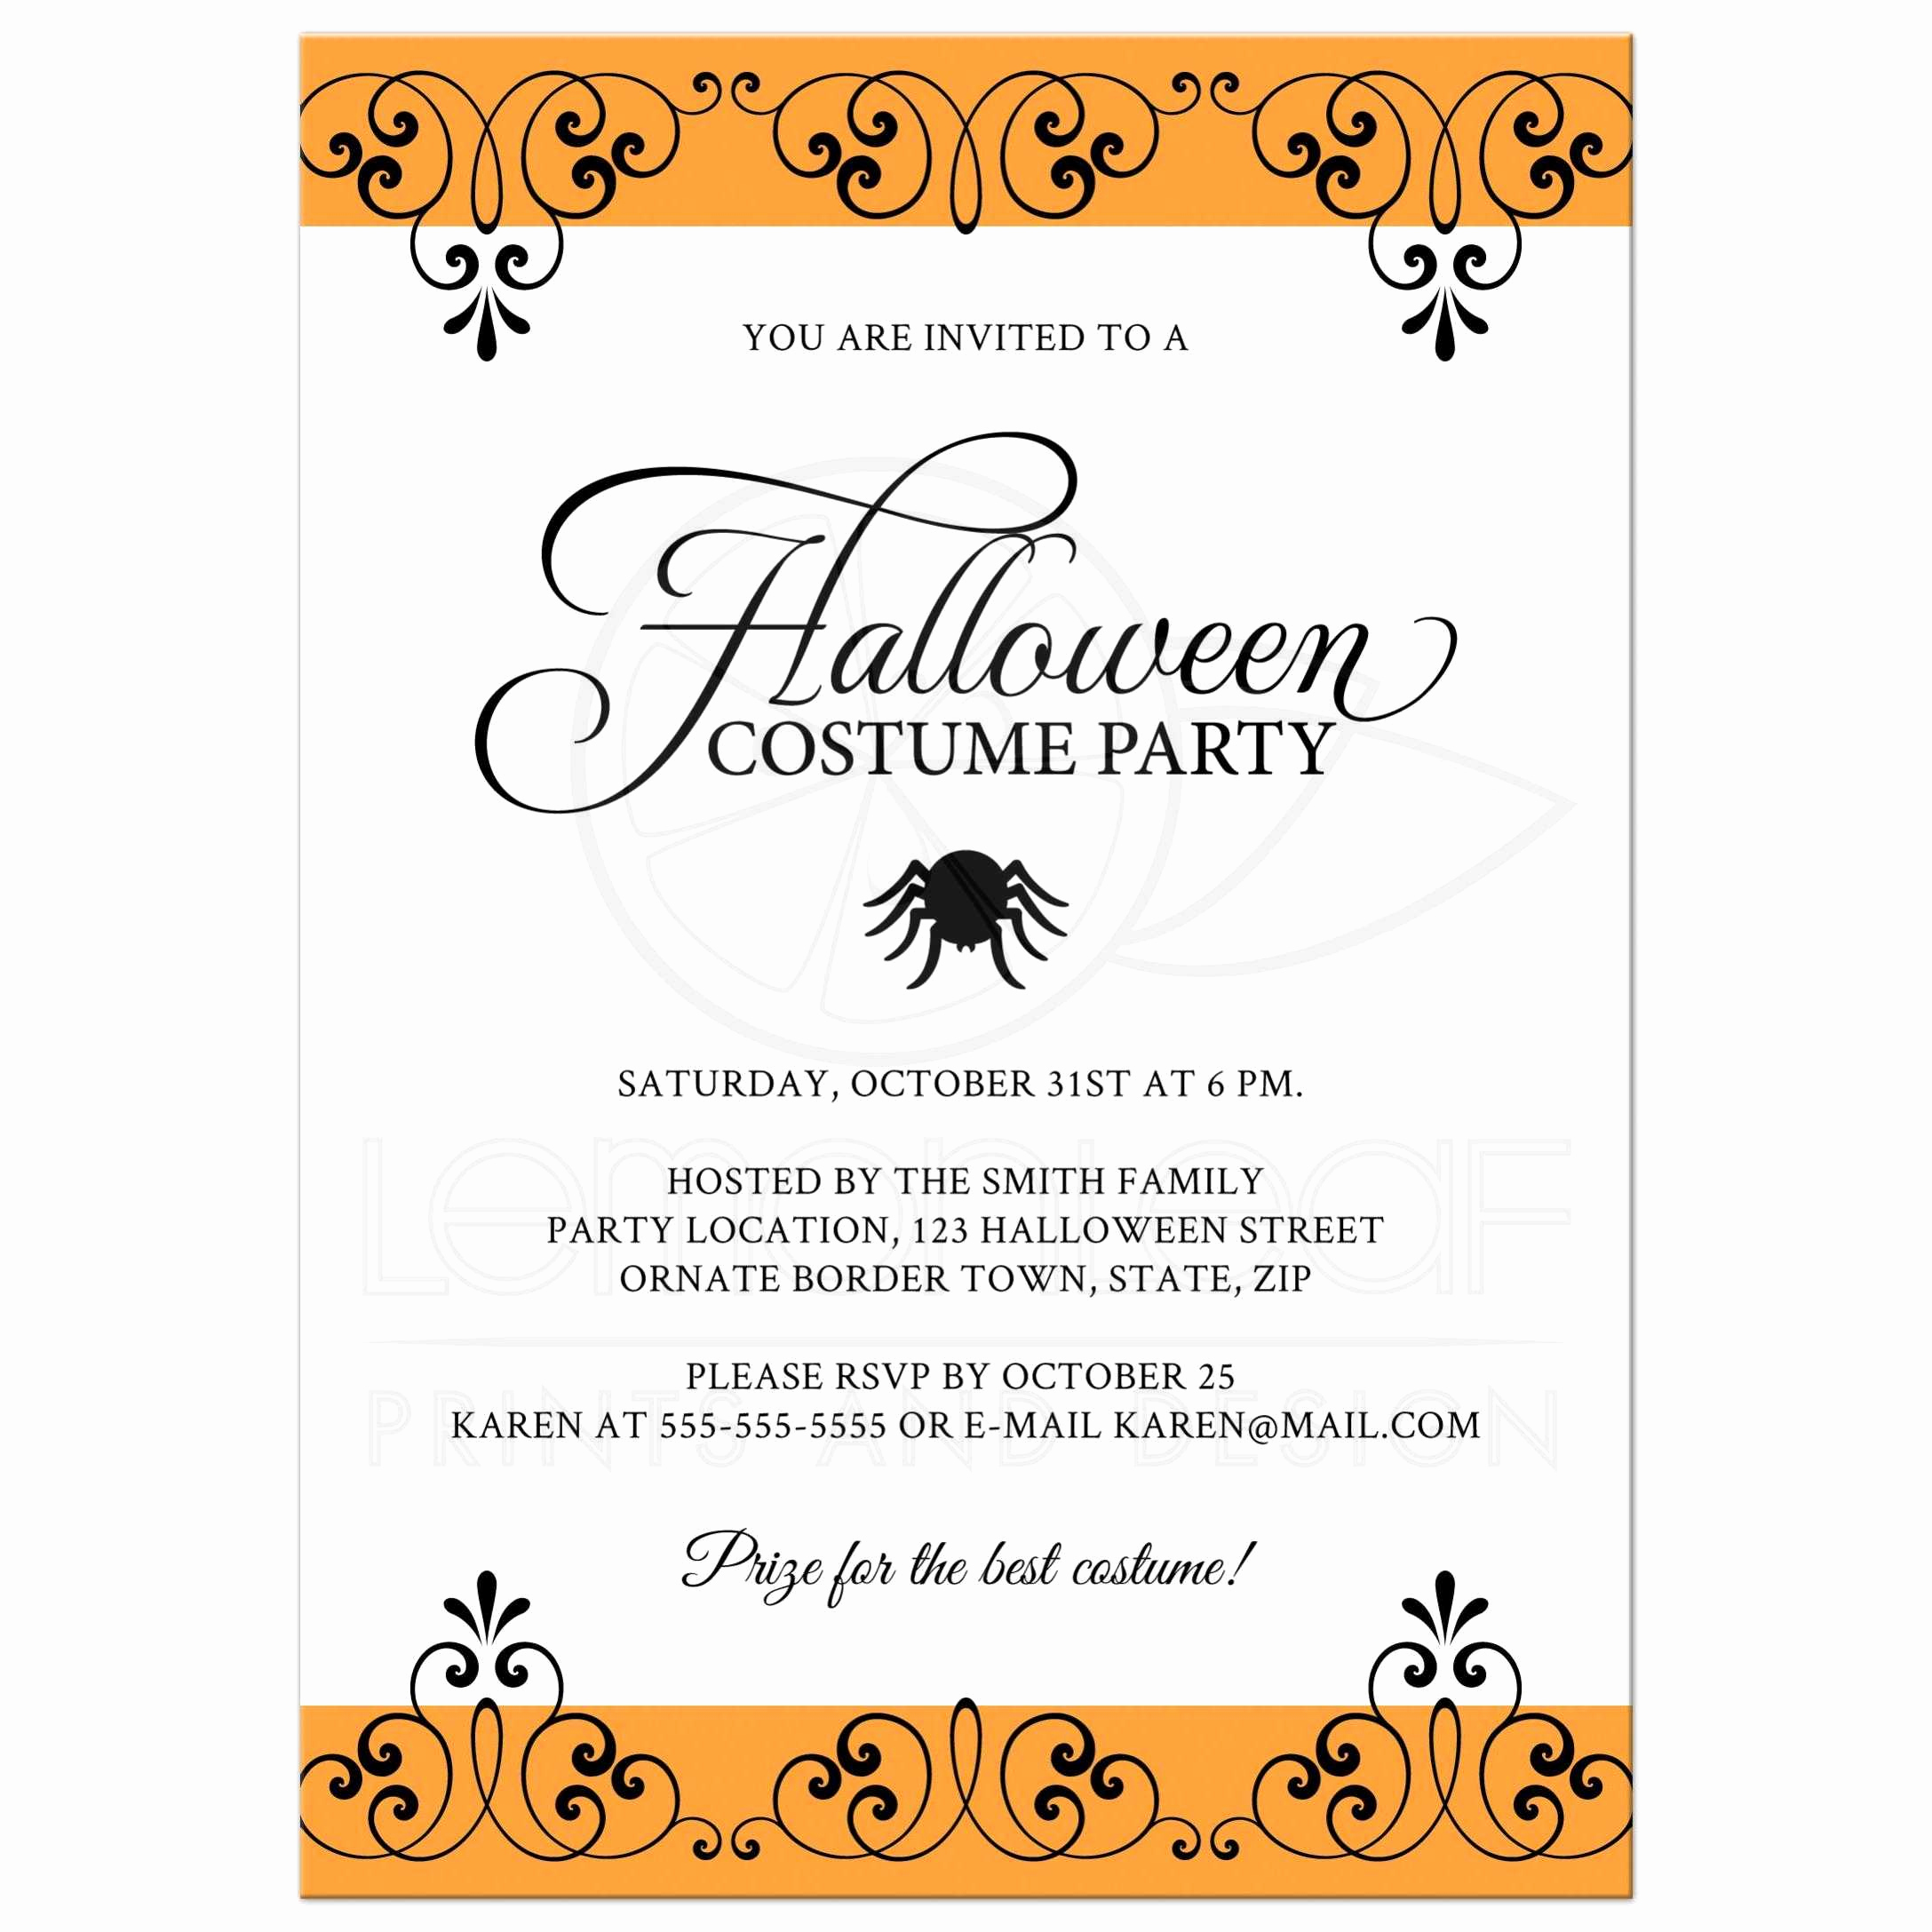 Halloween Costume Party Invitation New Halloween Costume Party Invitation with ornate Black and